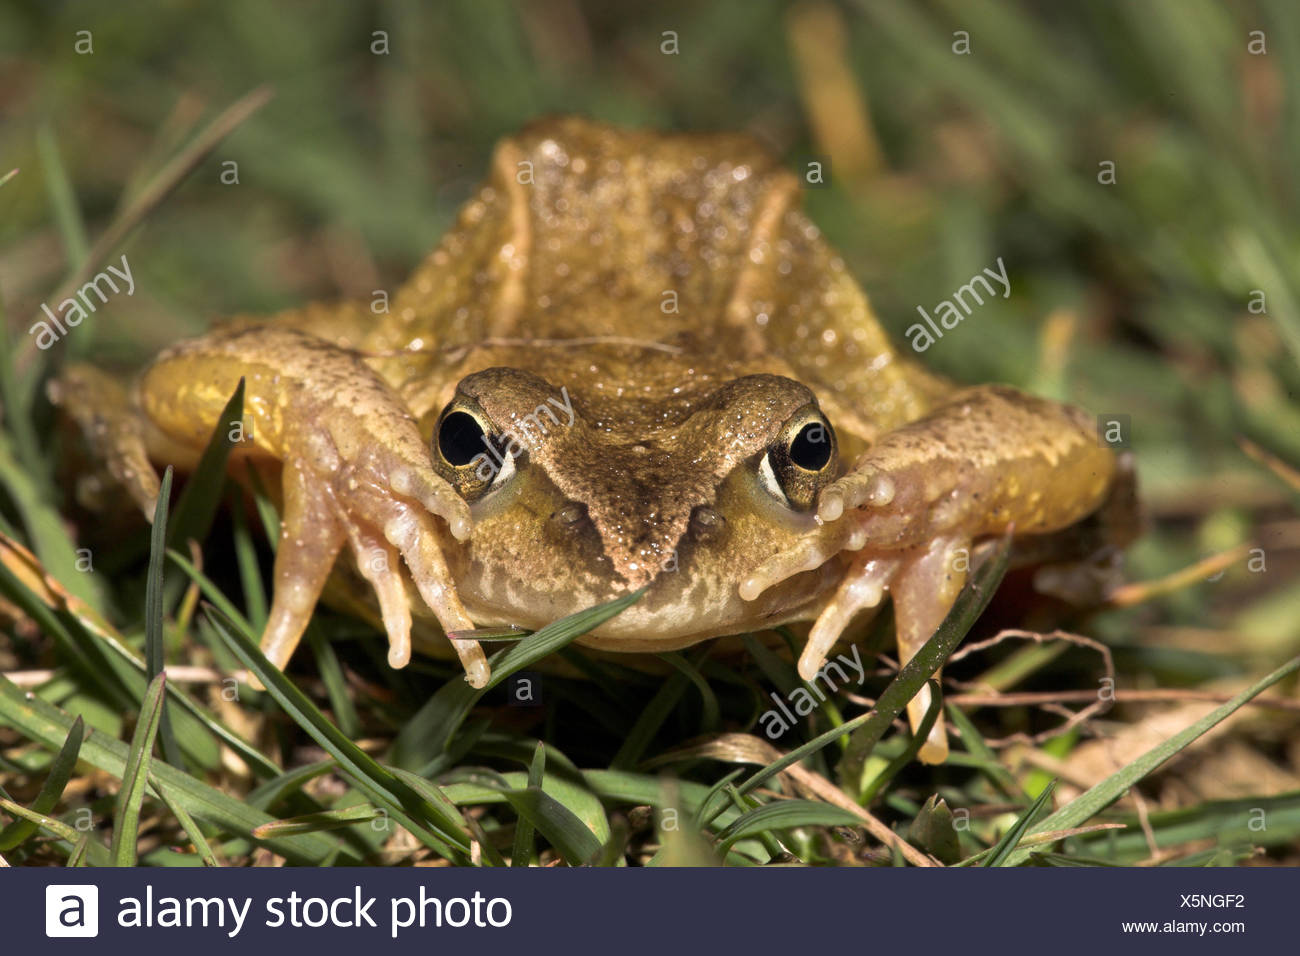 a common frog in defence - Stock Image